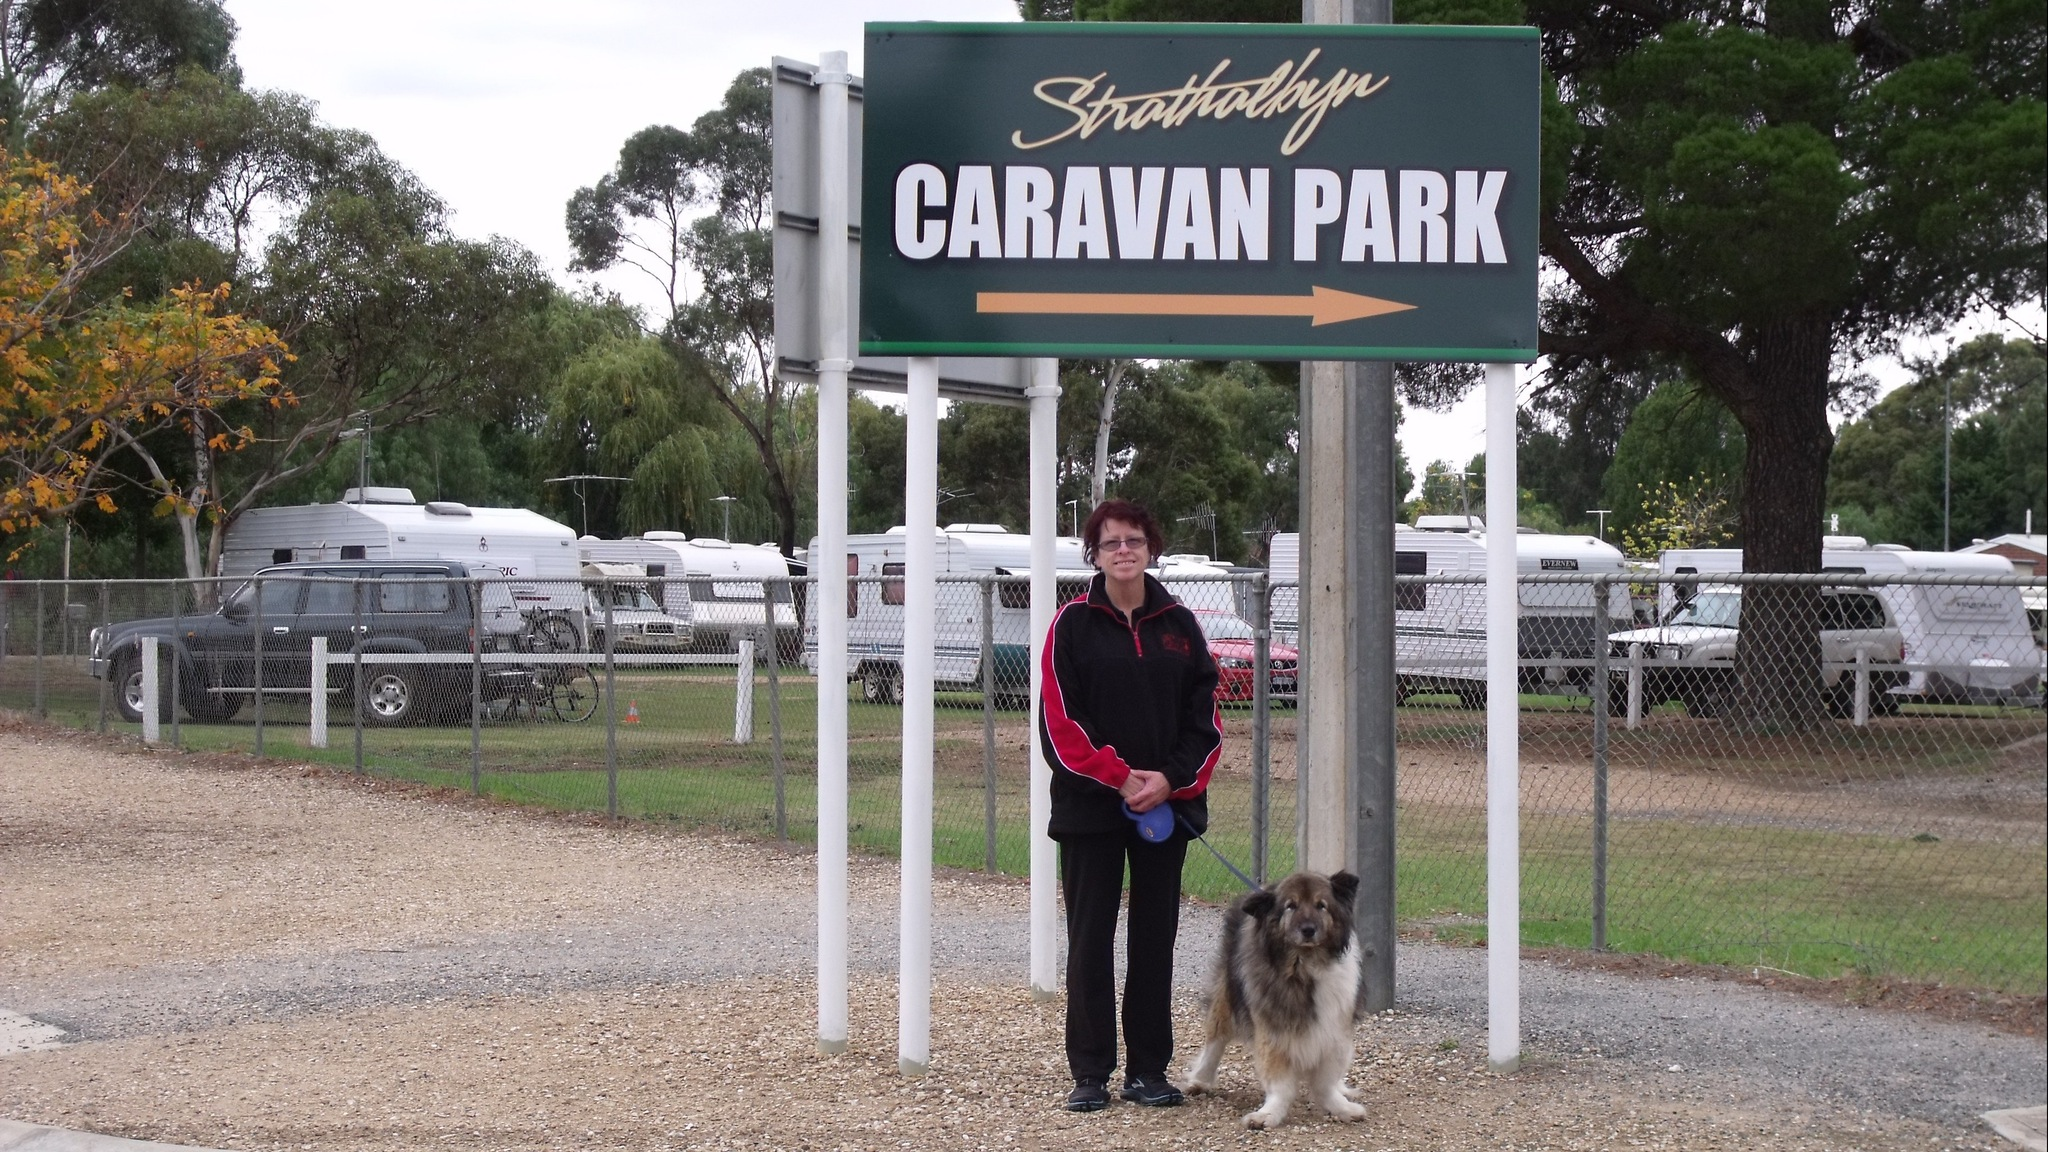 Strathalbyn Caravan Park - Bundaberg Accommodation